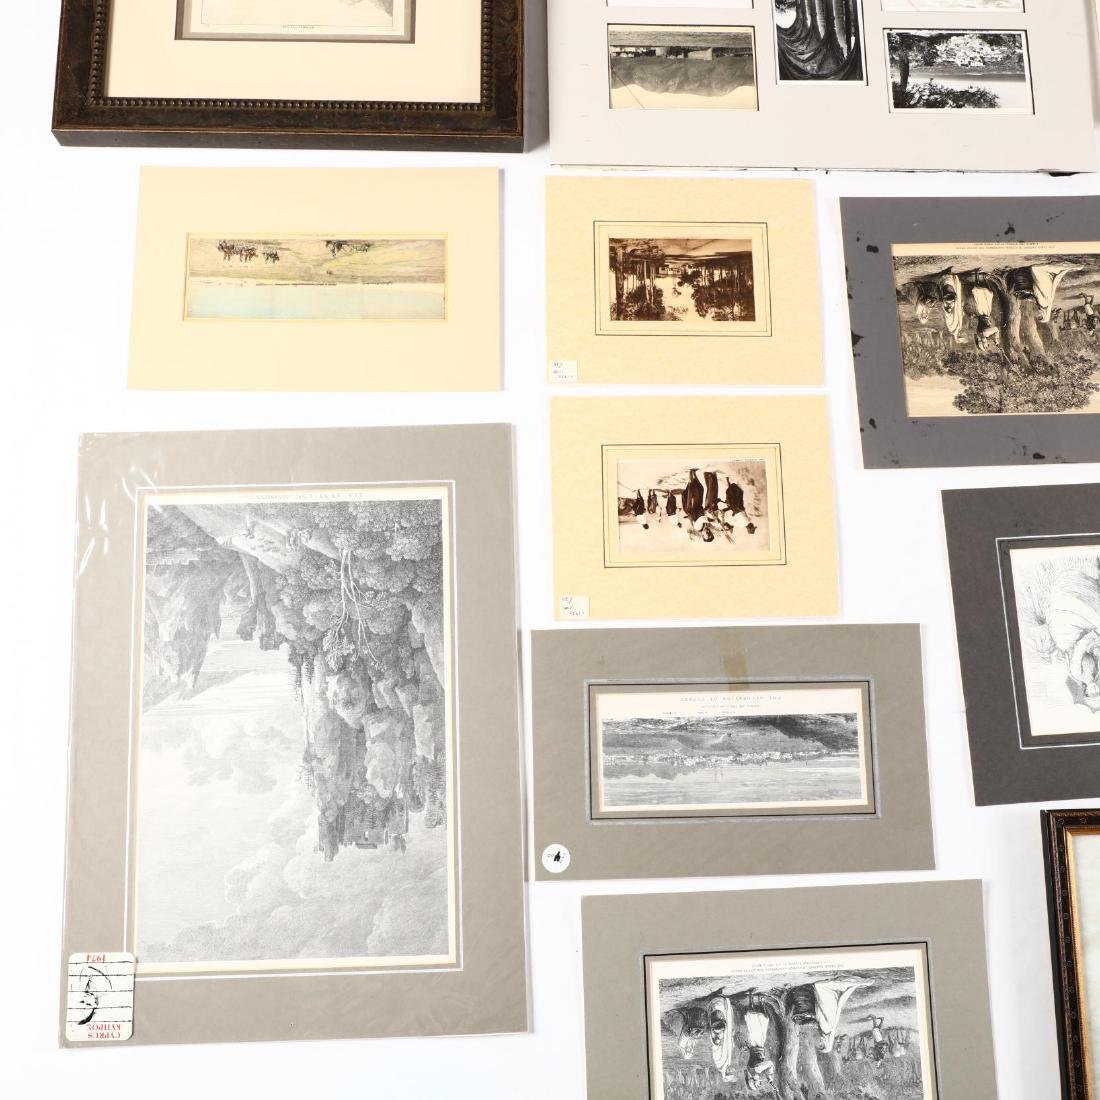 Group of Engravings and Photographs Documenting Old - 6